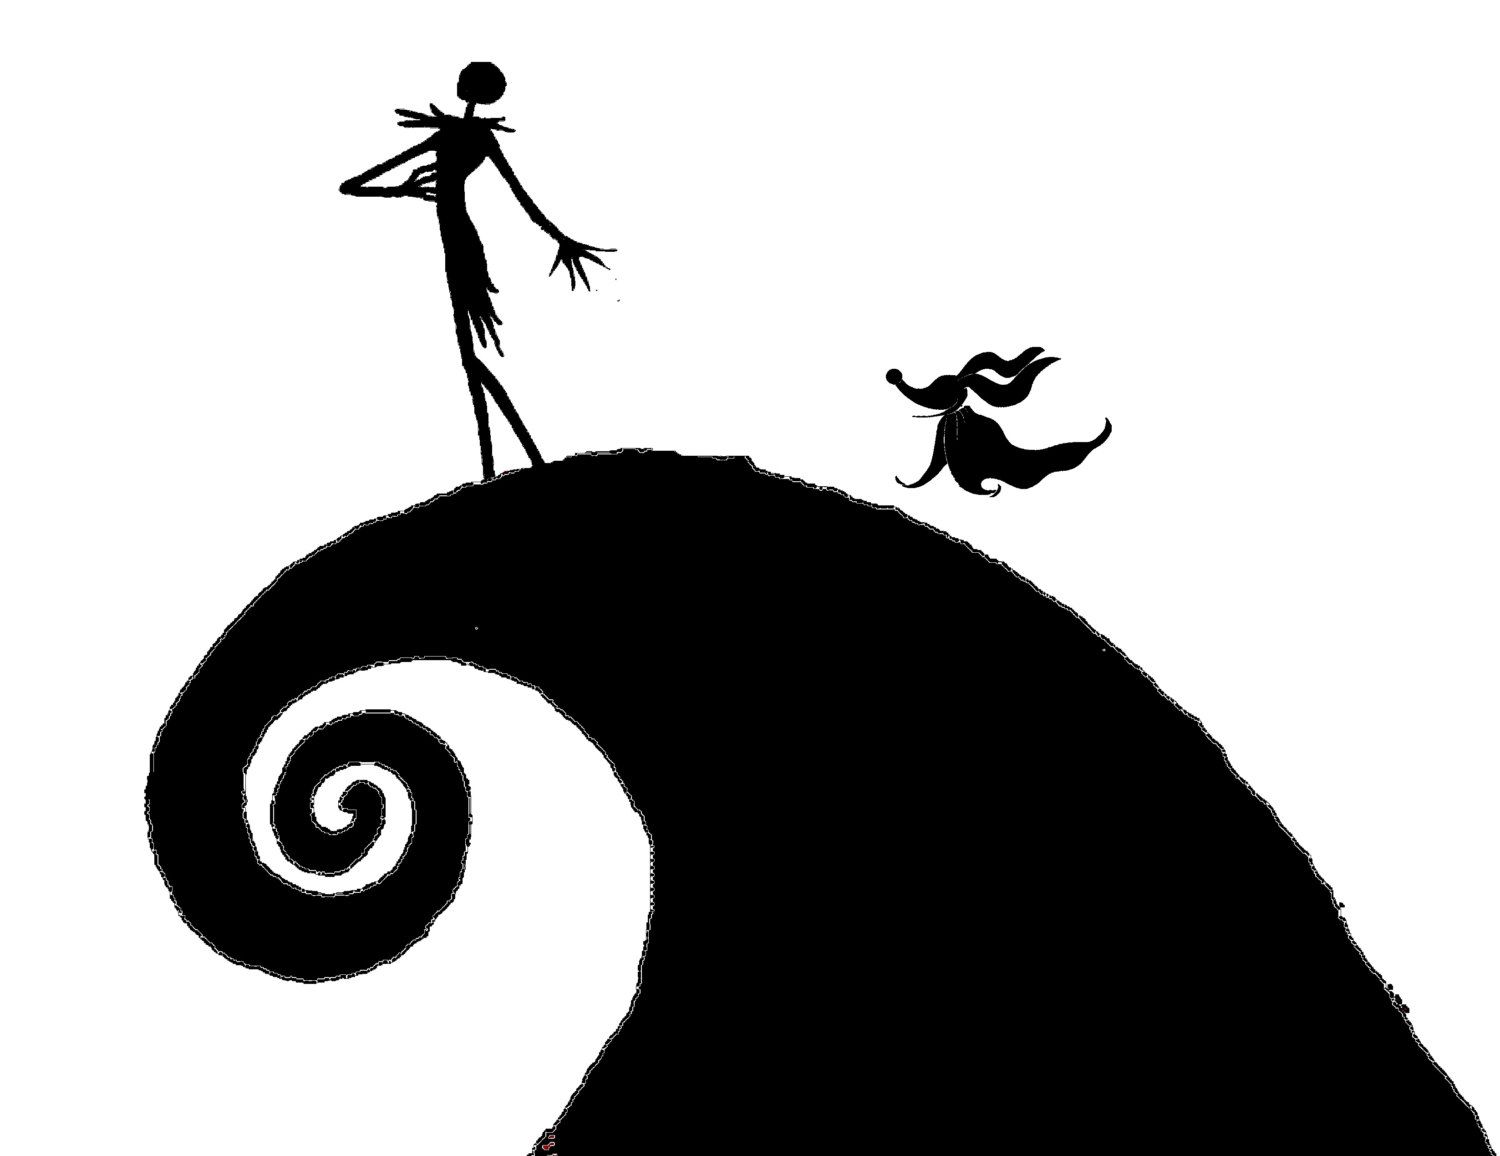 nightmare before christmas stencil - Google Search | Jack ...